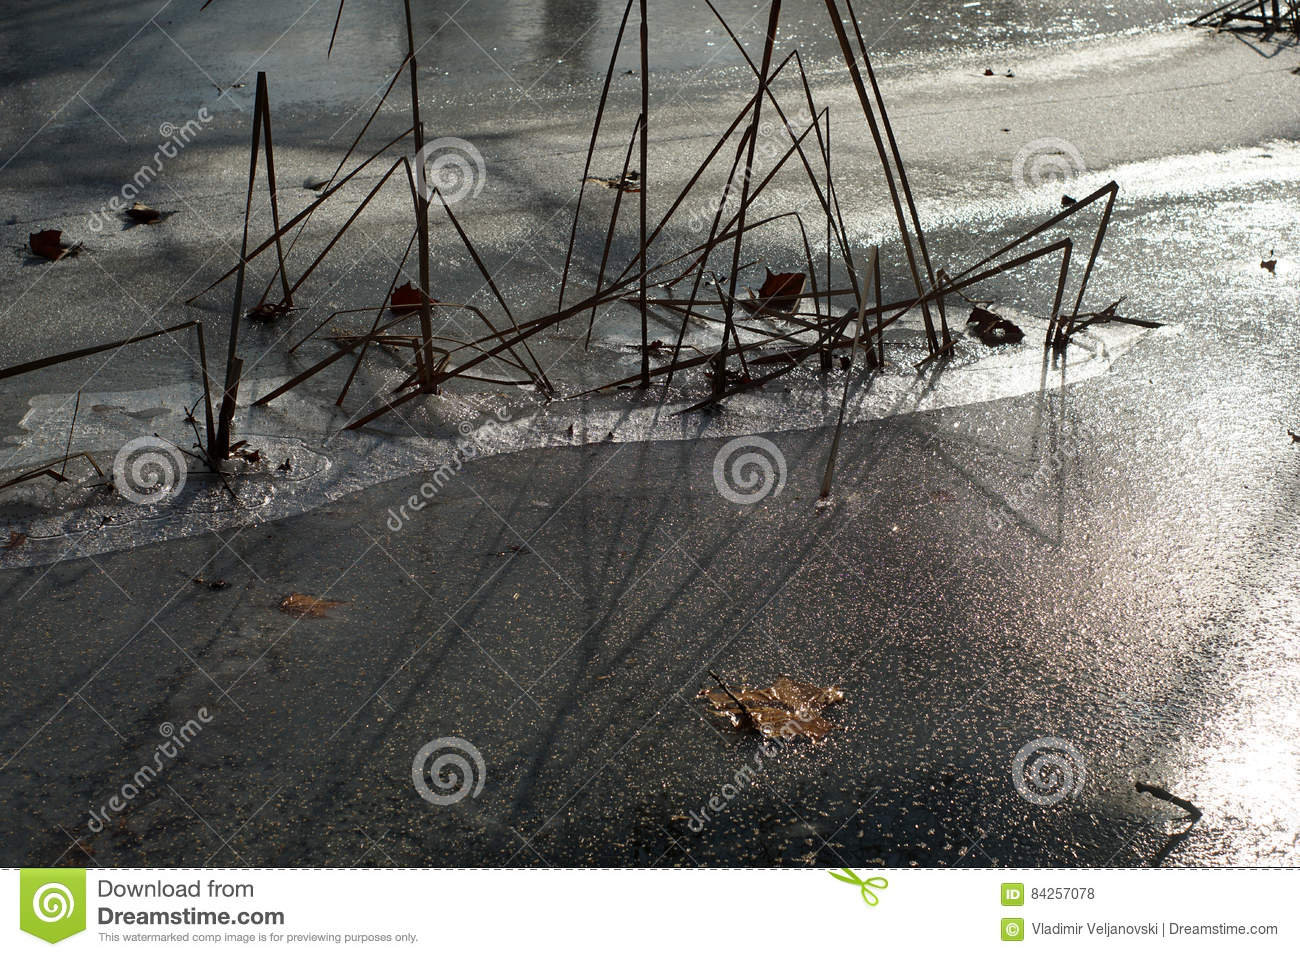 Download Cane over frozen lakes stock photo. Image of white, outdoors - 84257078